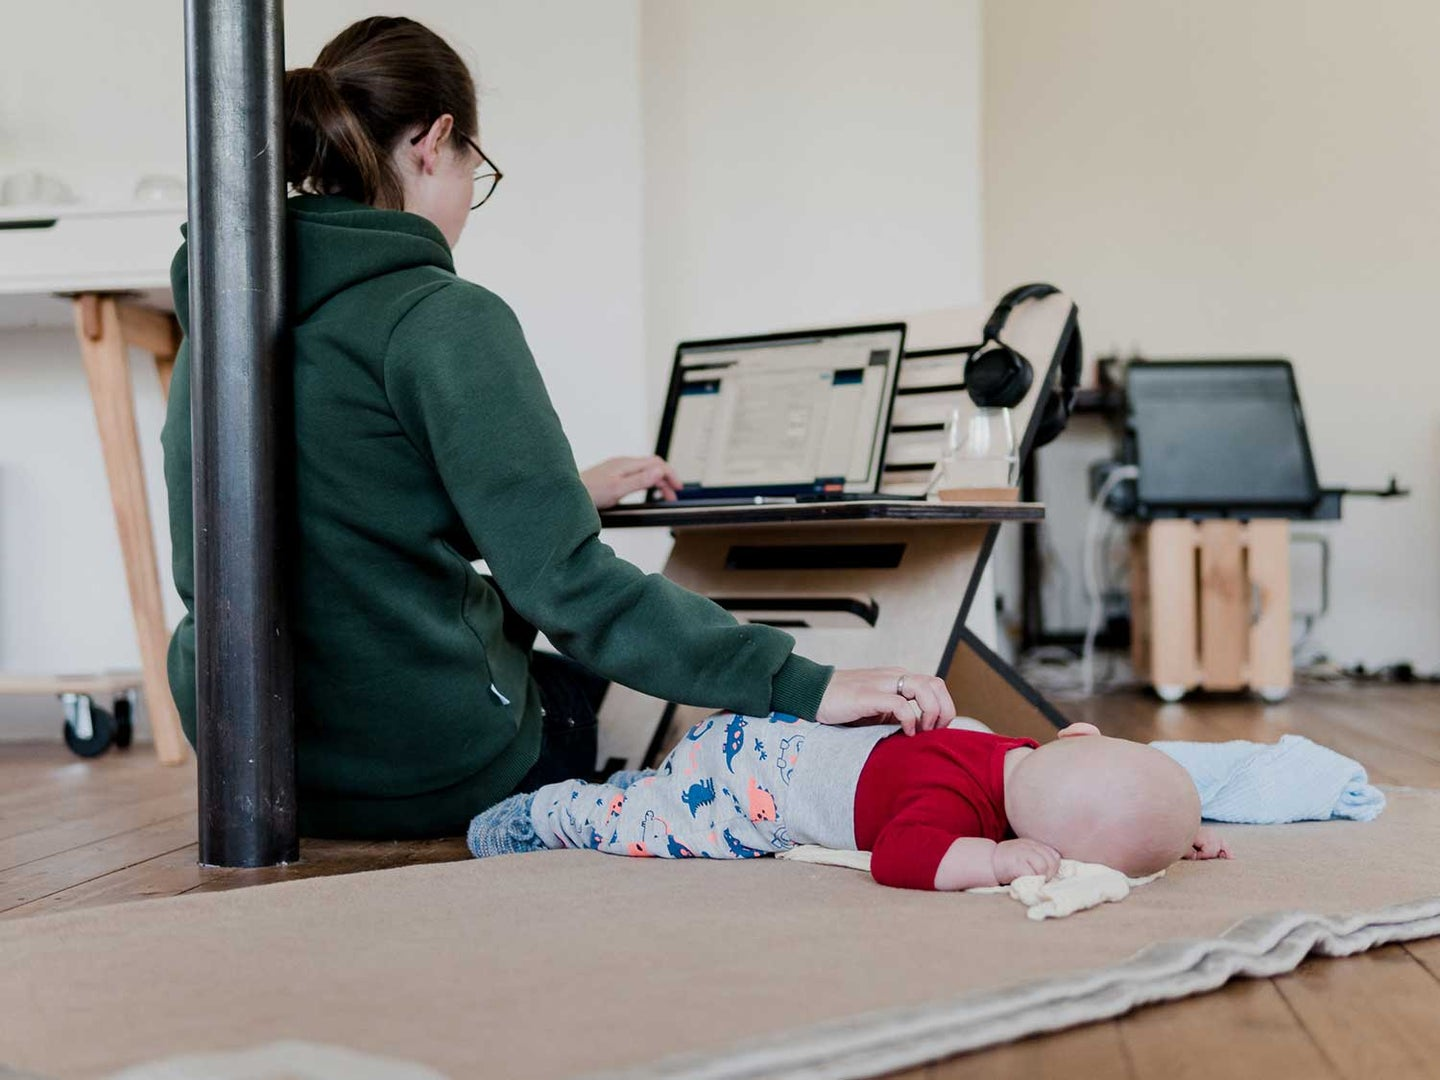 Woman sitting with lapdesk on floor with baby.